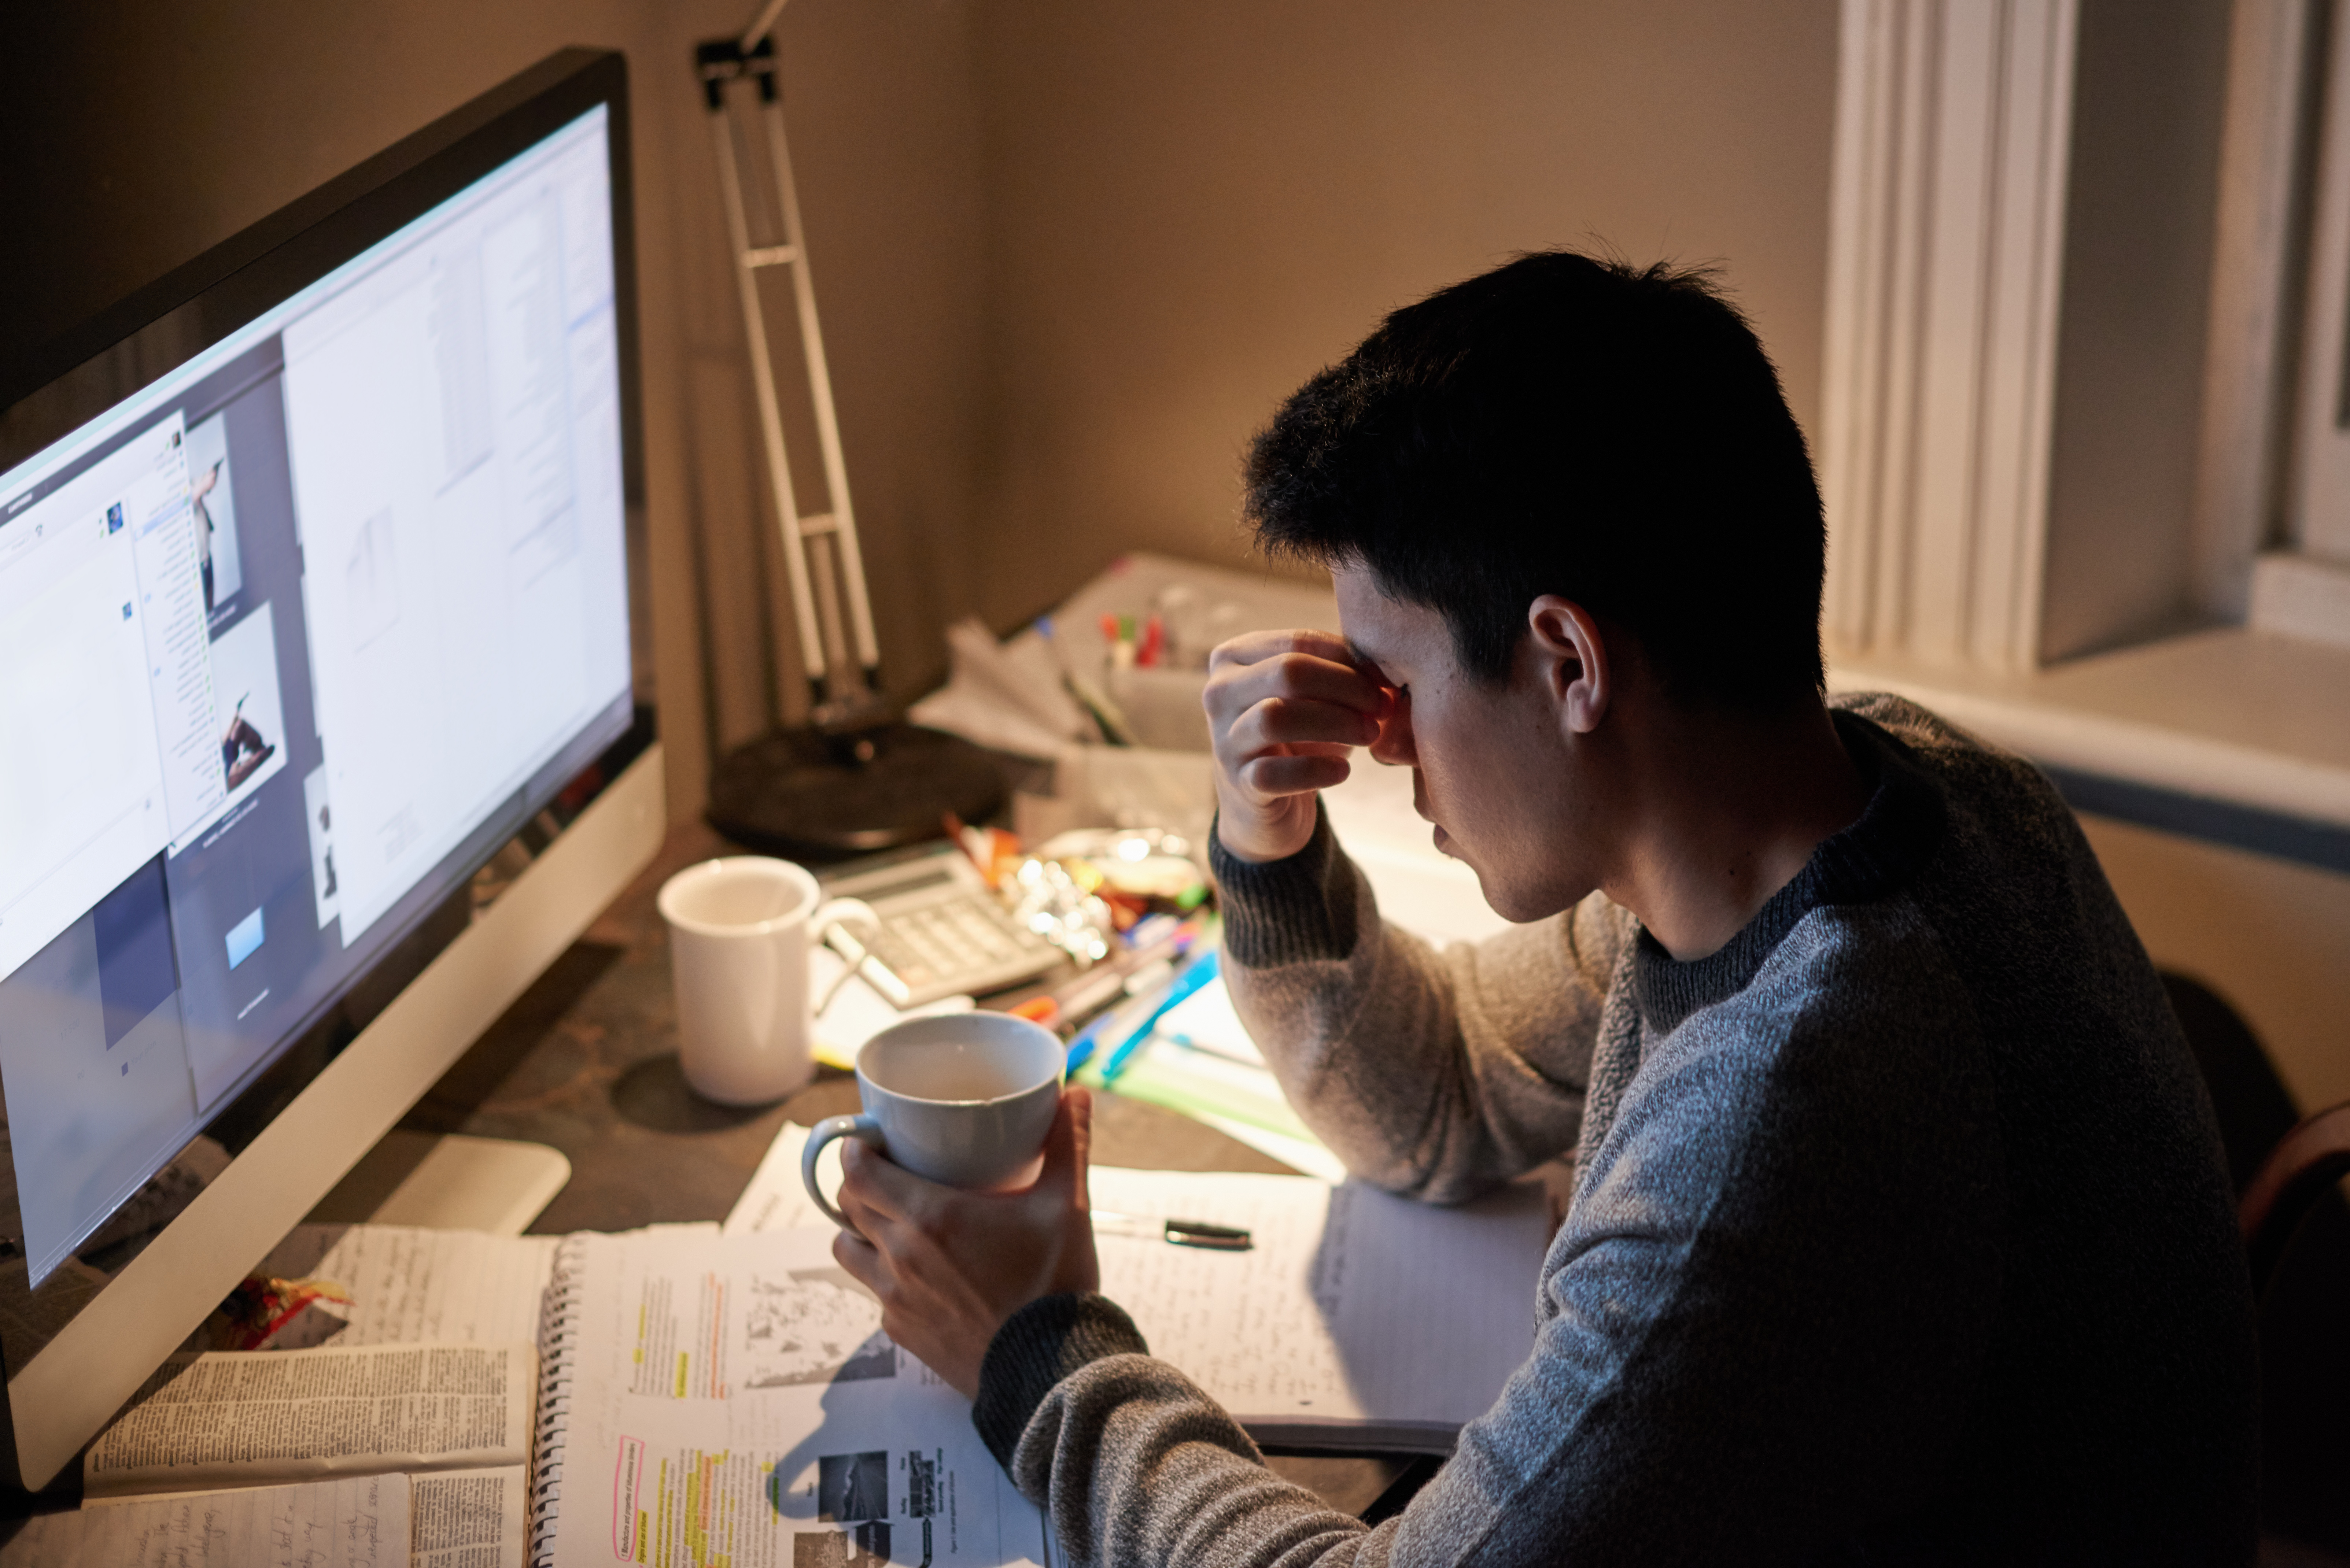 A young man sits at his desk in front of a desktop computer screen looking upset as he holds a mug